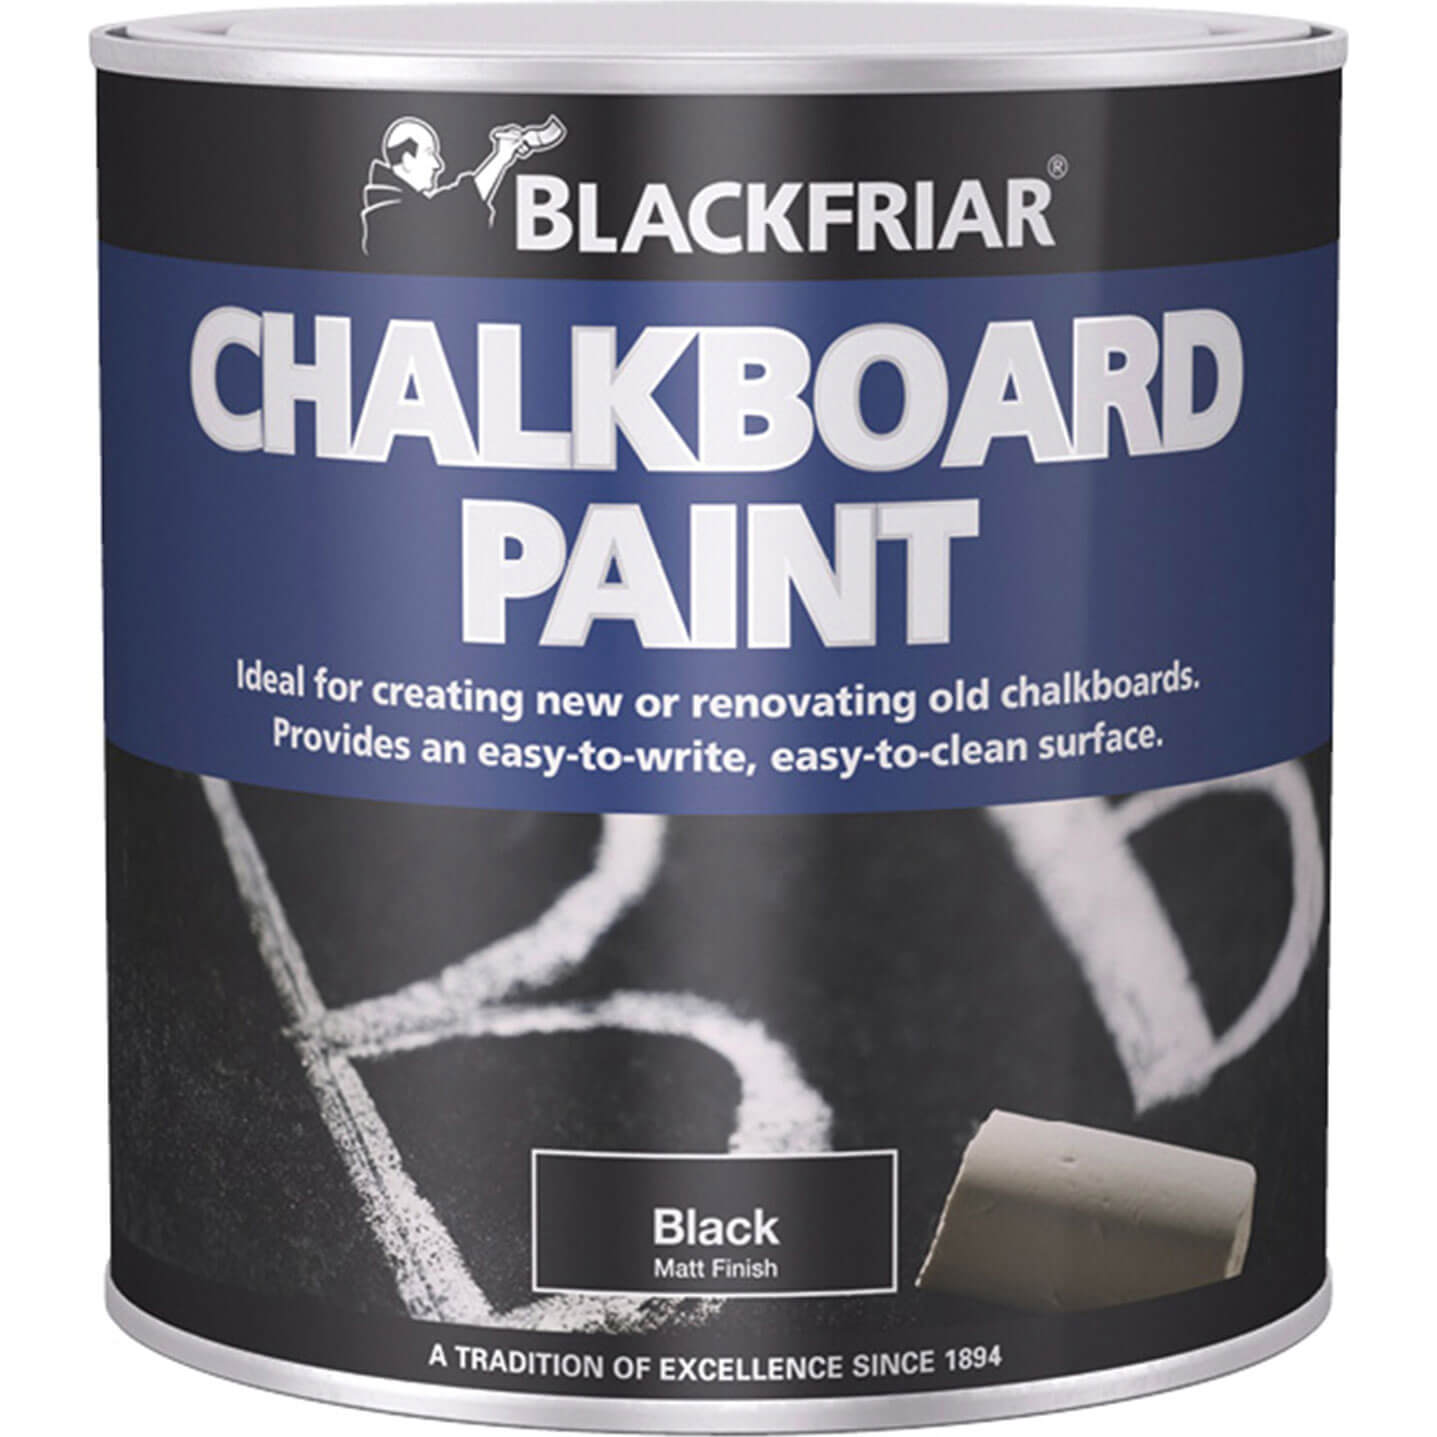 Blackfriar Chalkboard Paint for Renovating or Creating Chalkboards 125ml